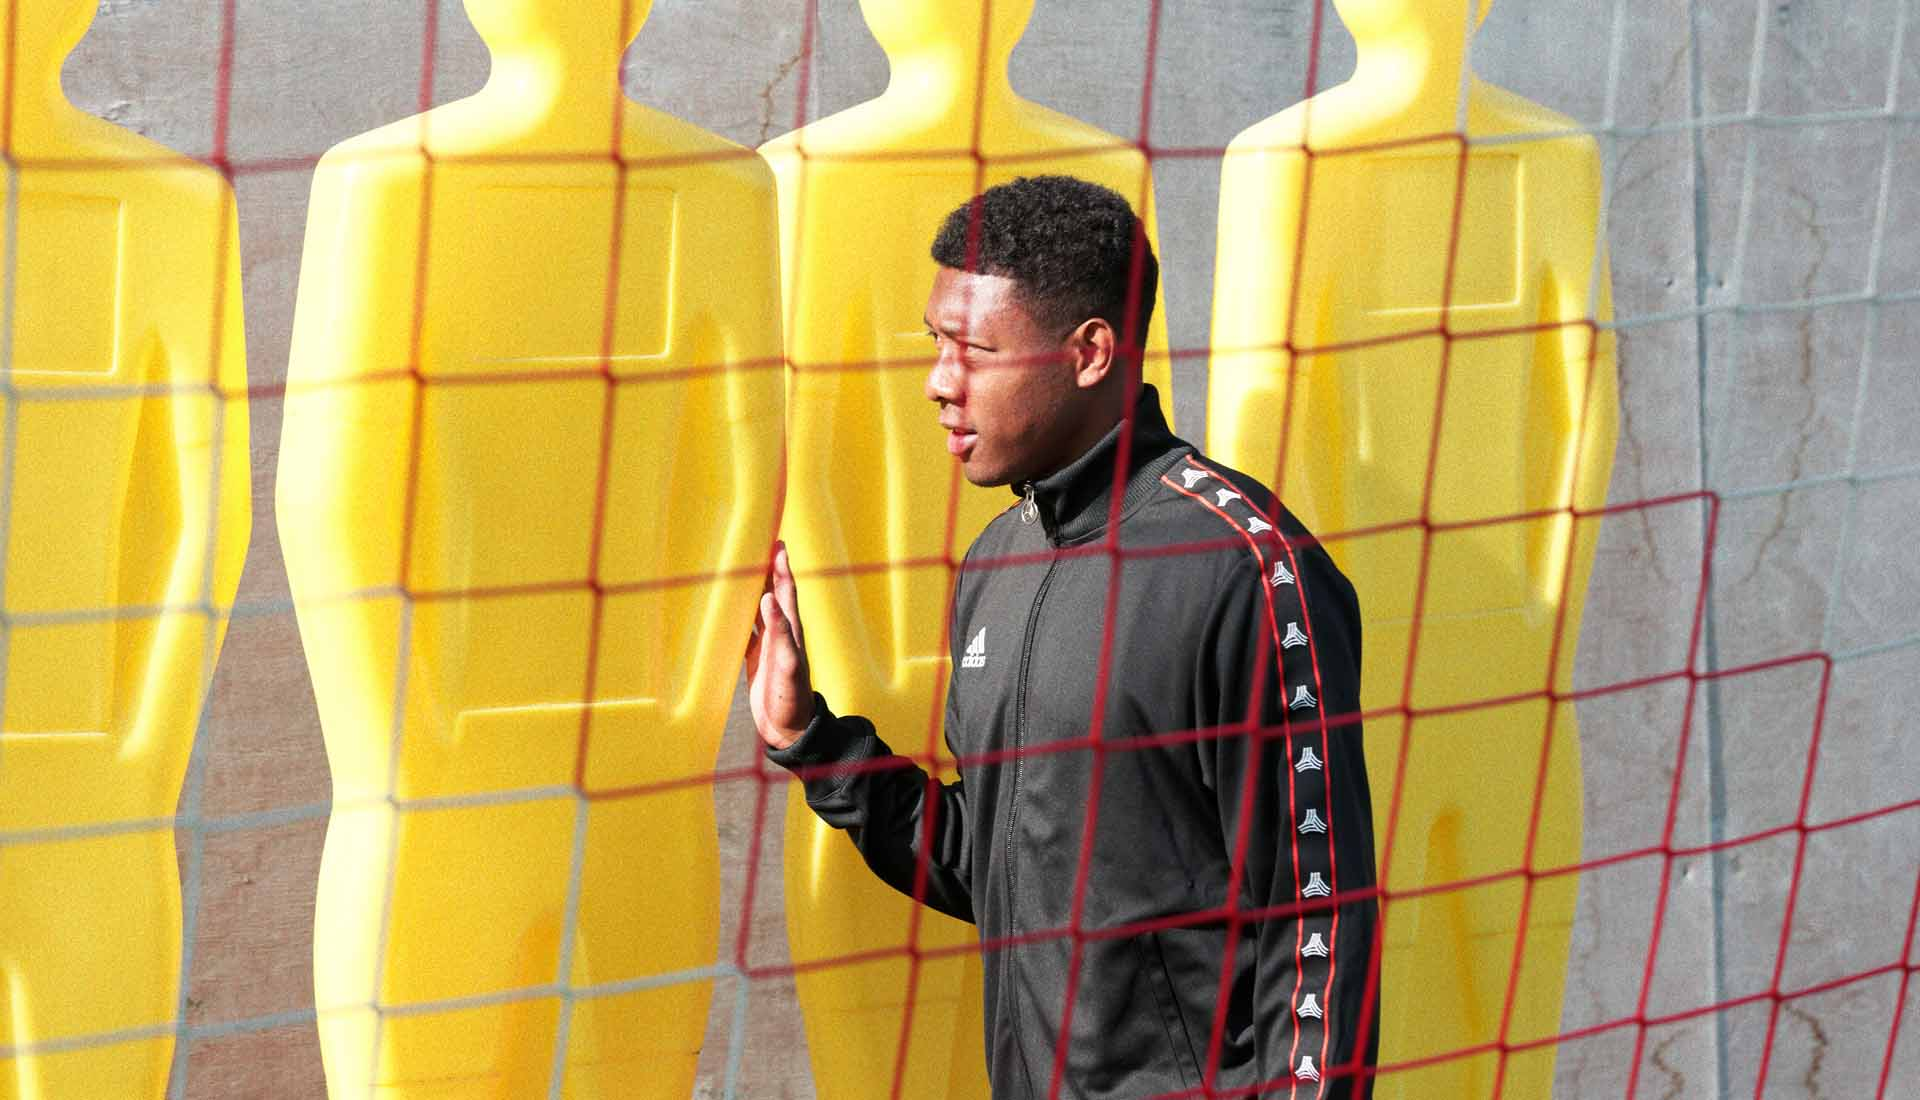 9-alaba-interview-fcb-min.jpg